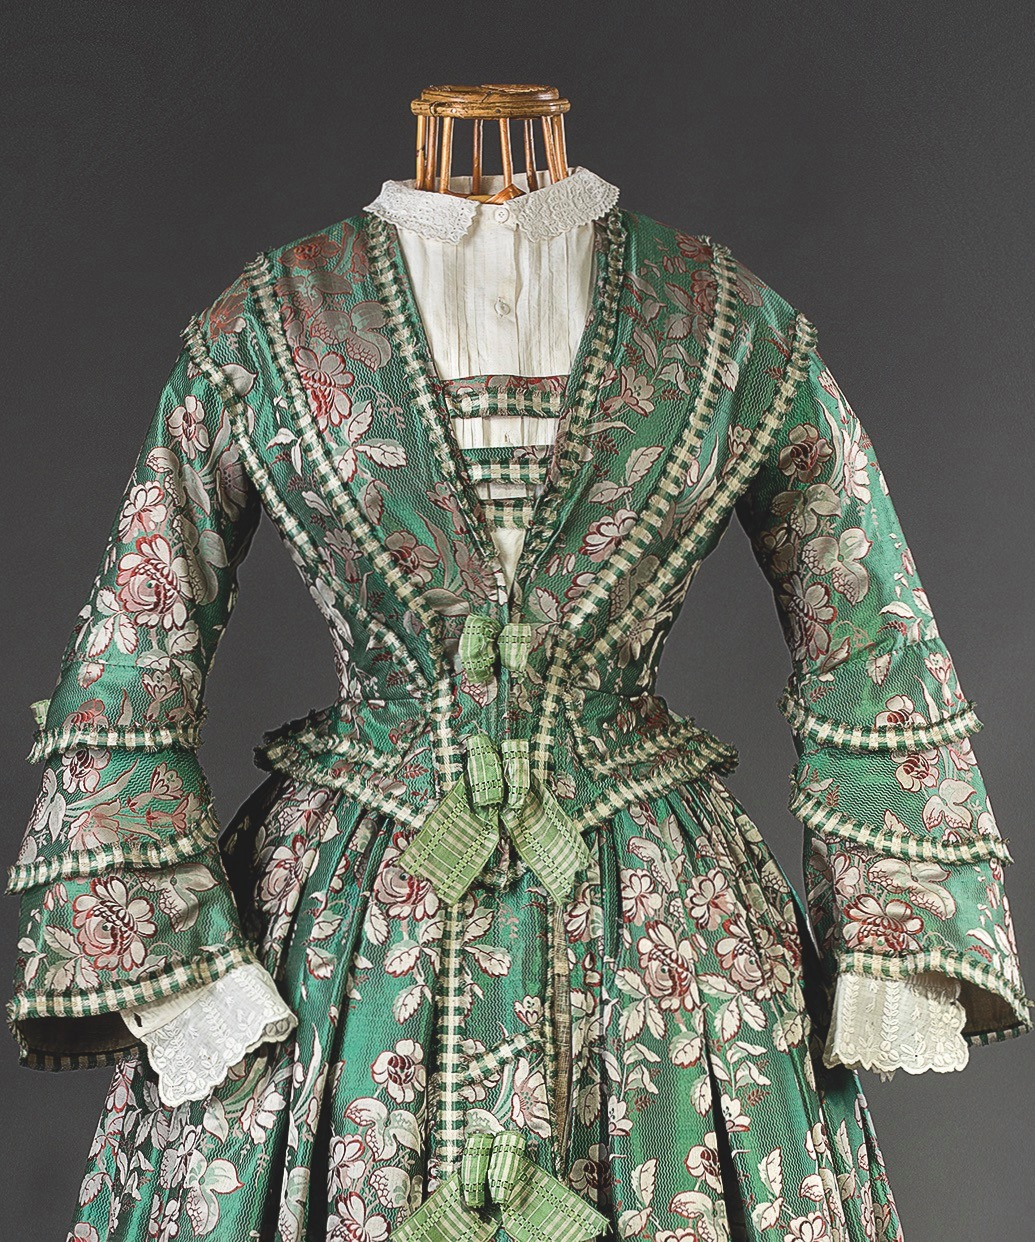 Two-piece dress, c. 1850,Prague. Silk with a woven pattern, silk ribbons, linen. Purchased from the Hainz family in 1970, Museum of Decorative Arts in Prague Uměleckoprůmyslové museum v Praze